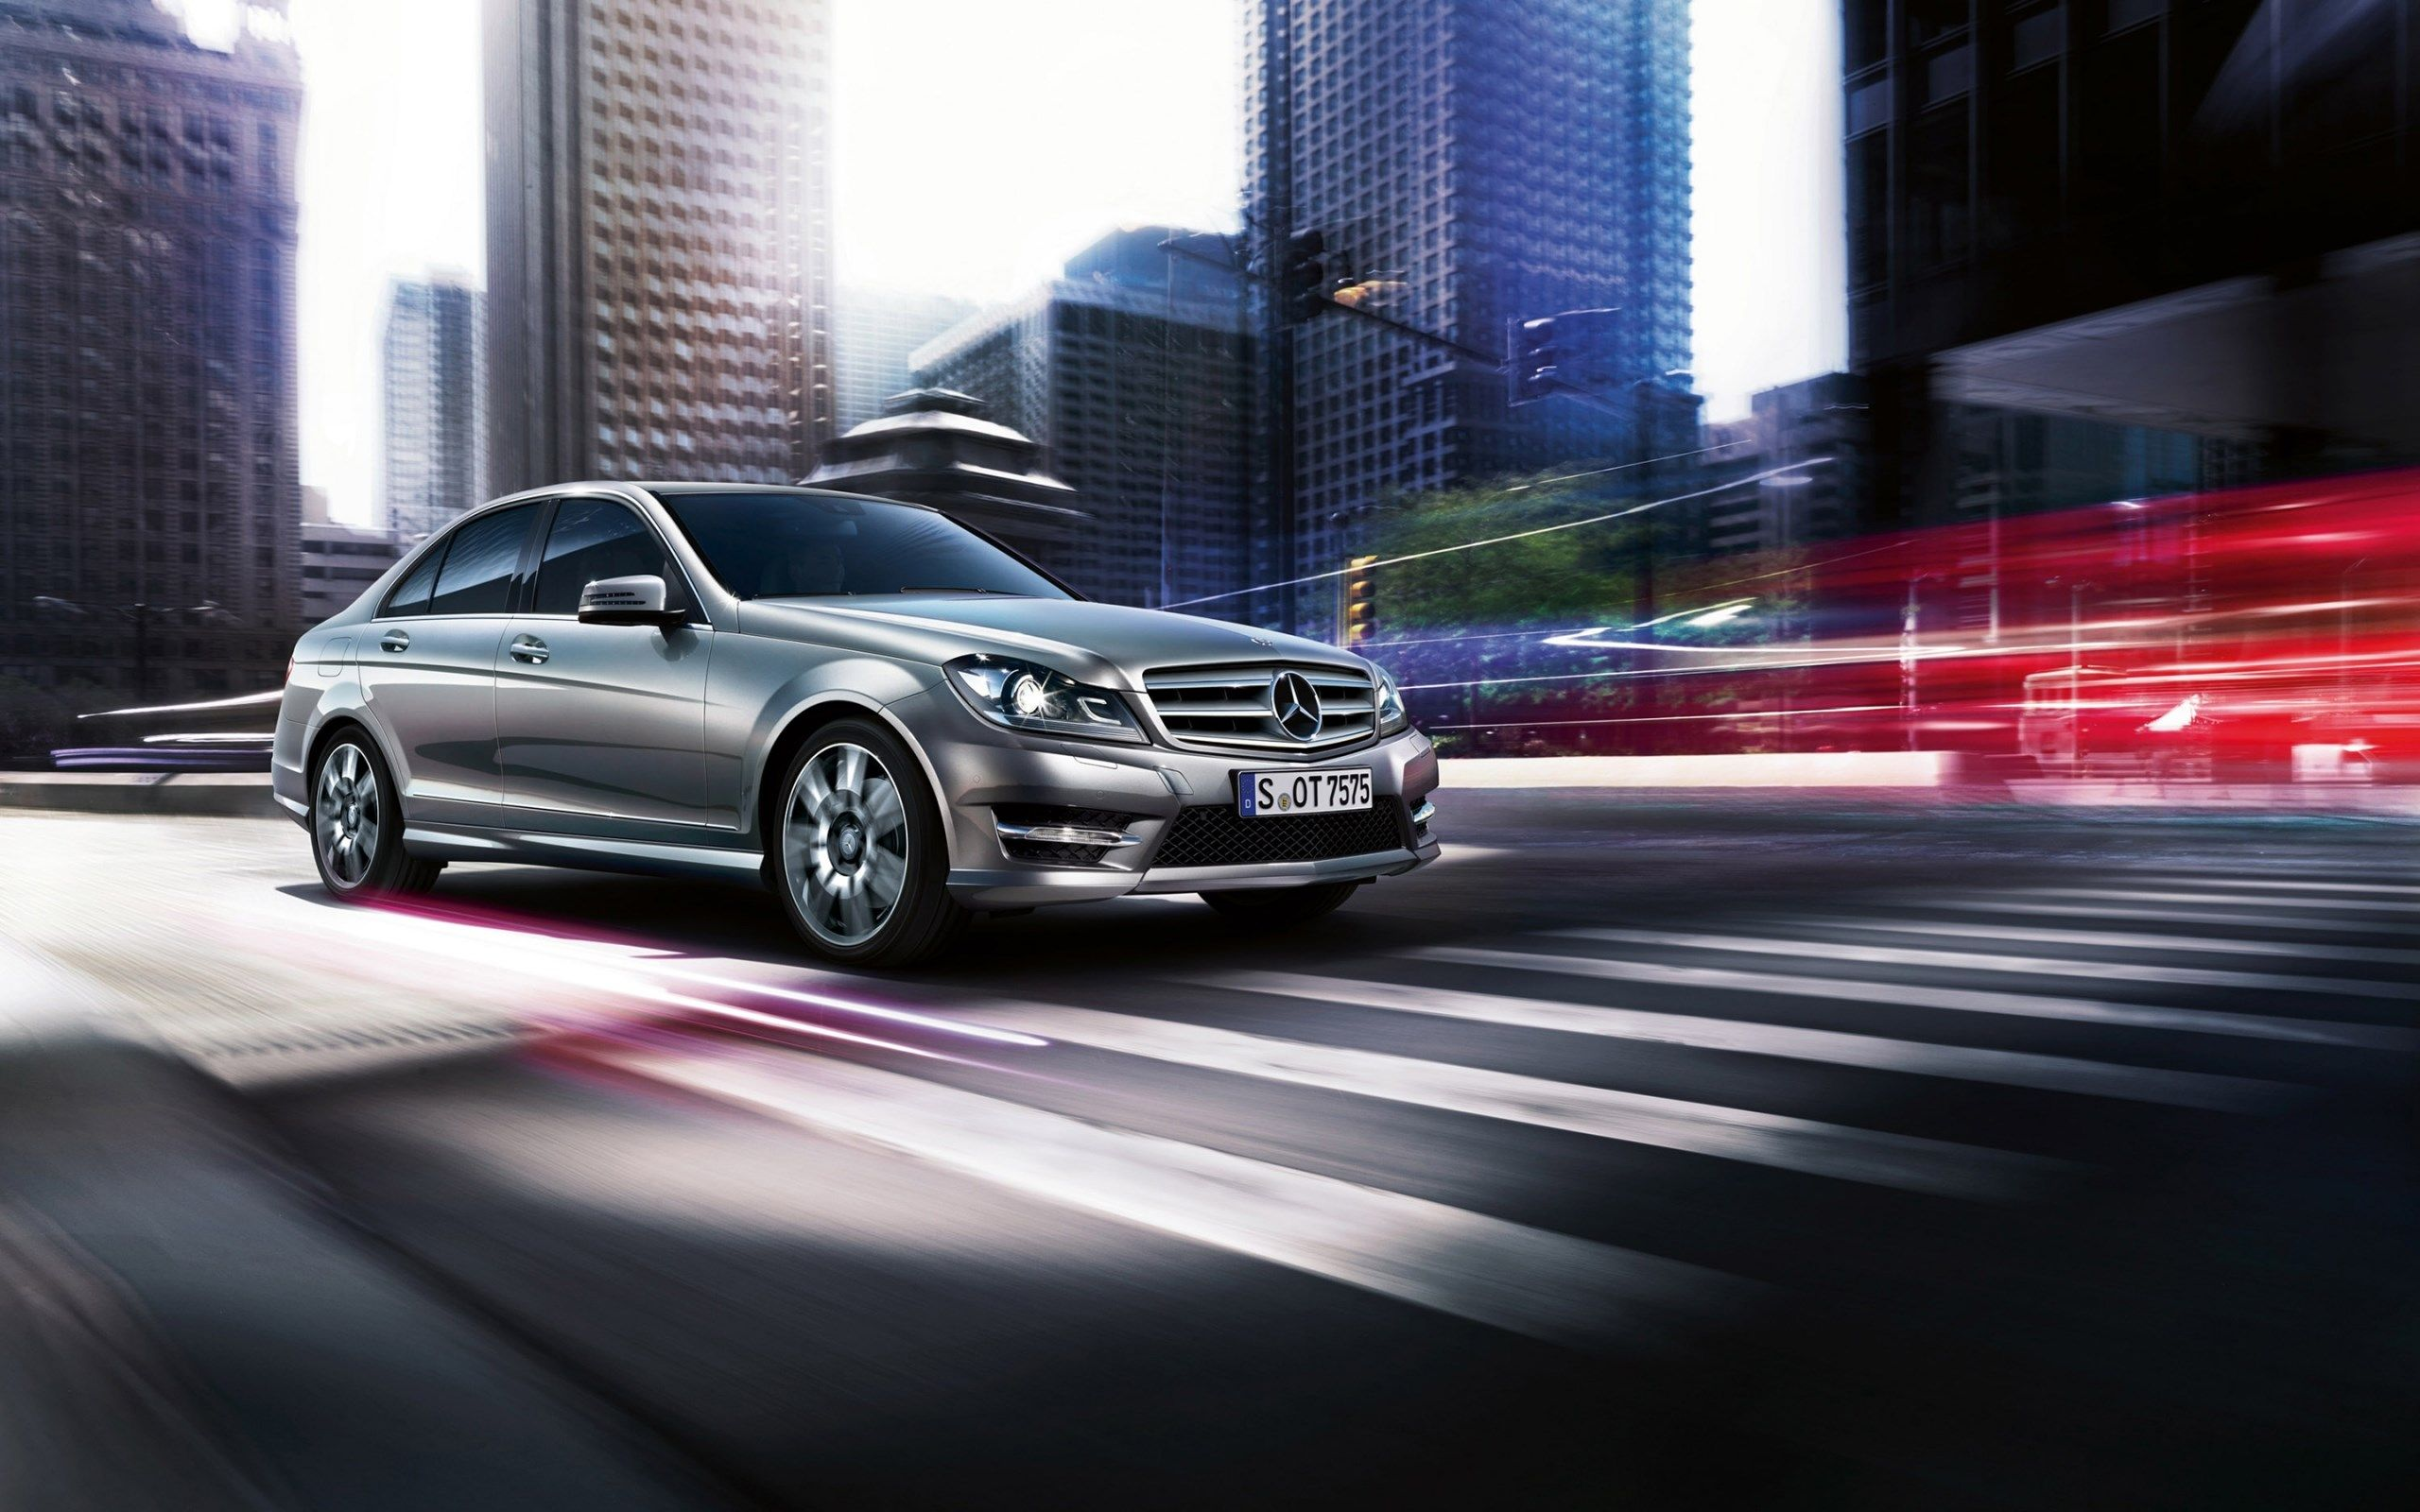 px 2013 mercedes benz c class macbook wallpapers hd by